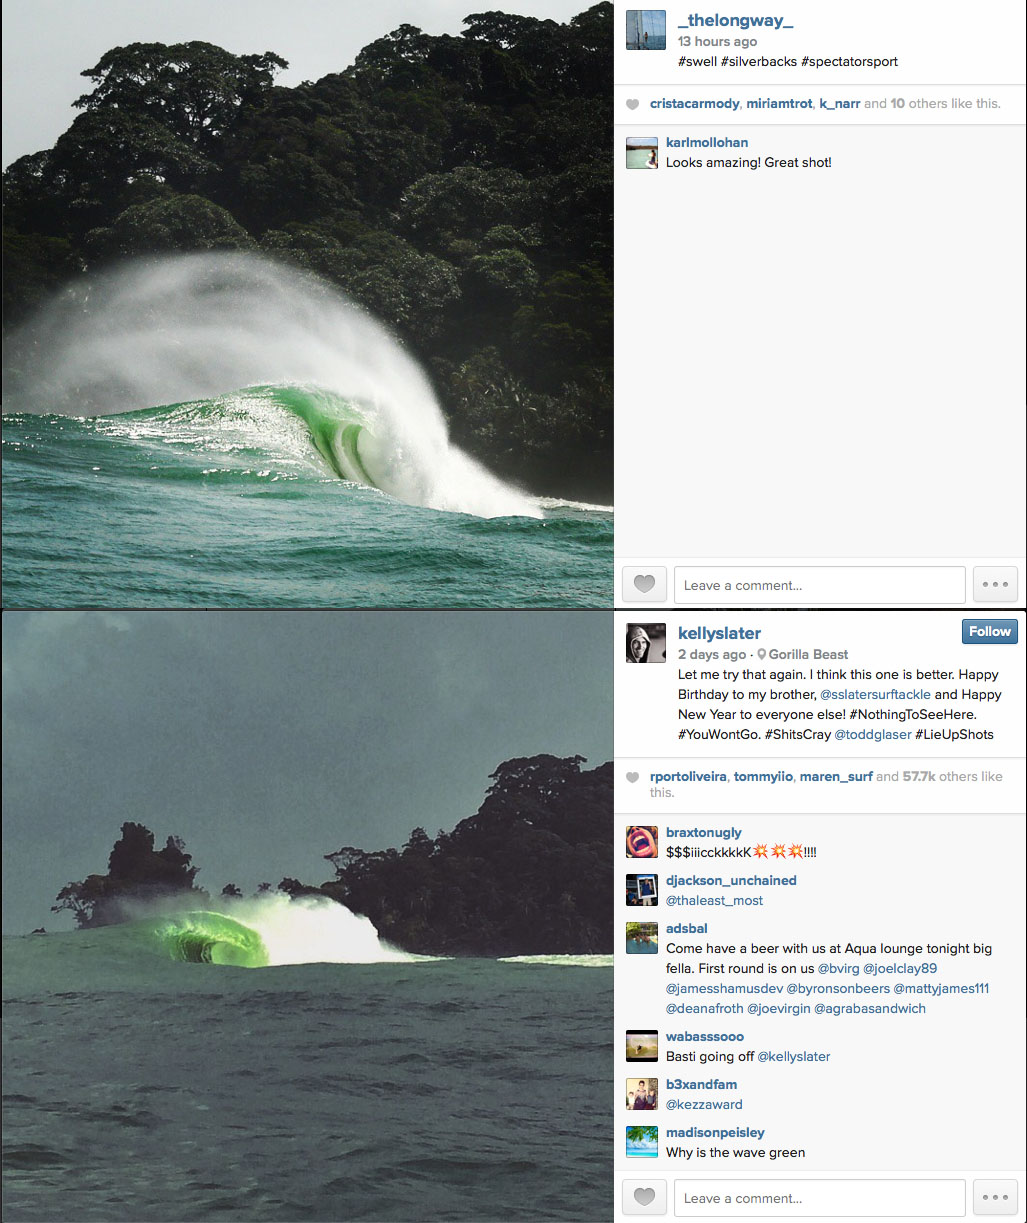 Only difference: Kelly Slater has a few more followers than I do...